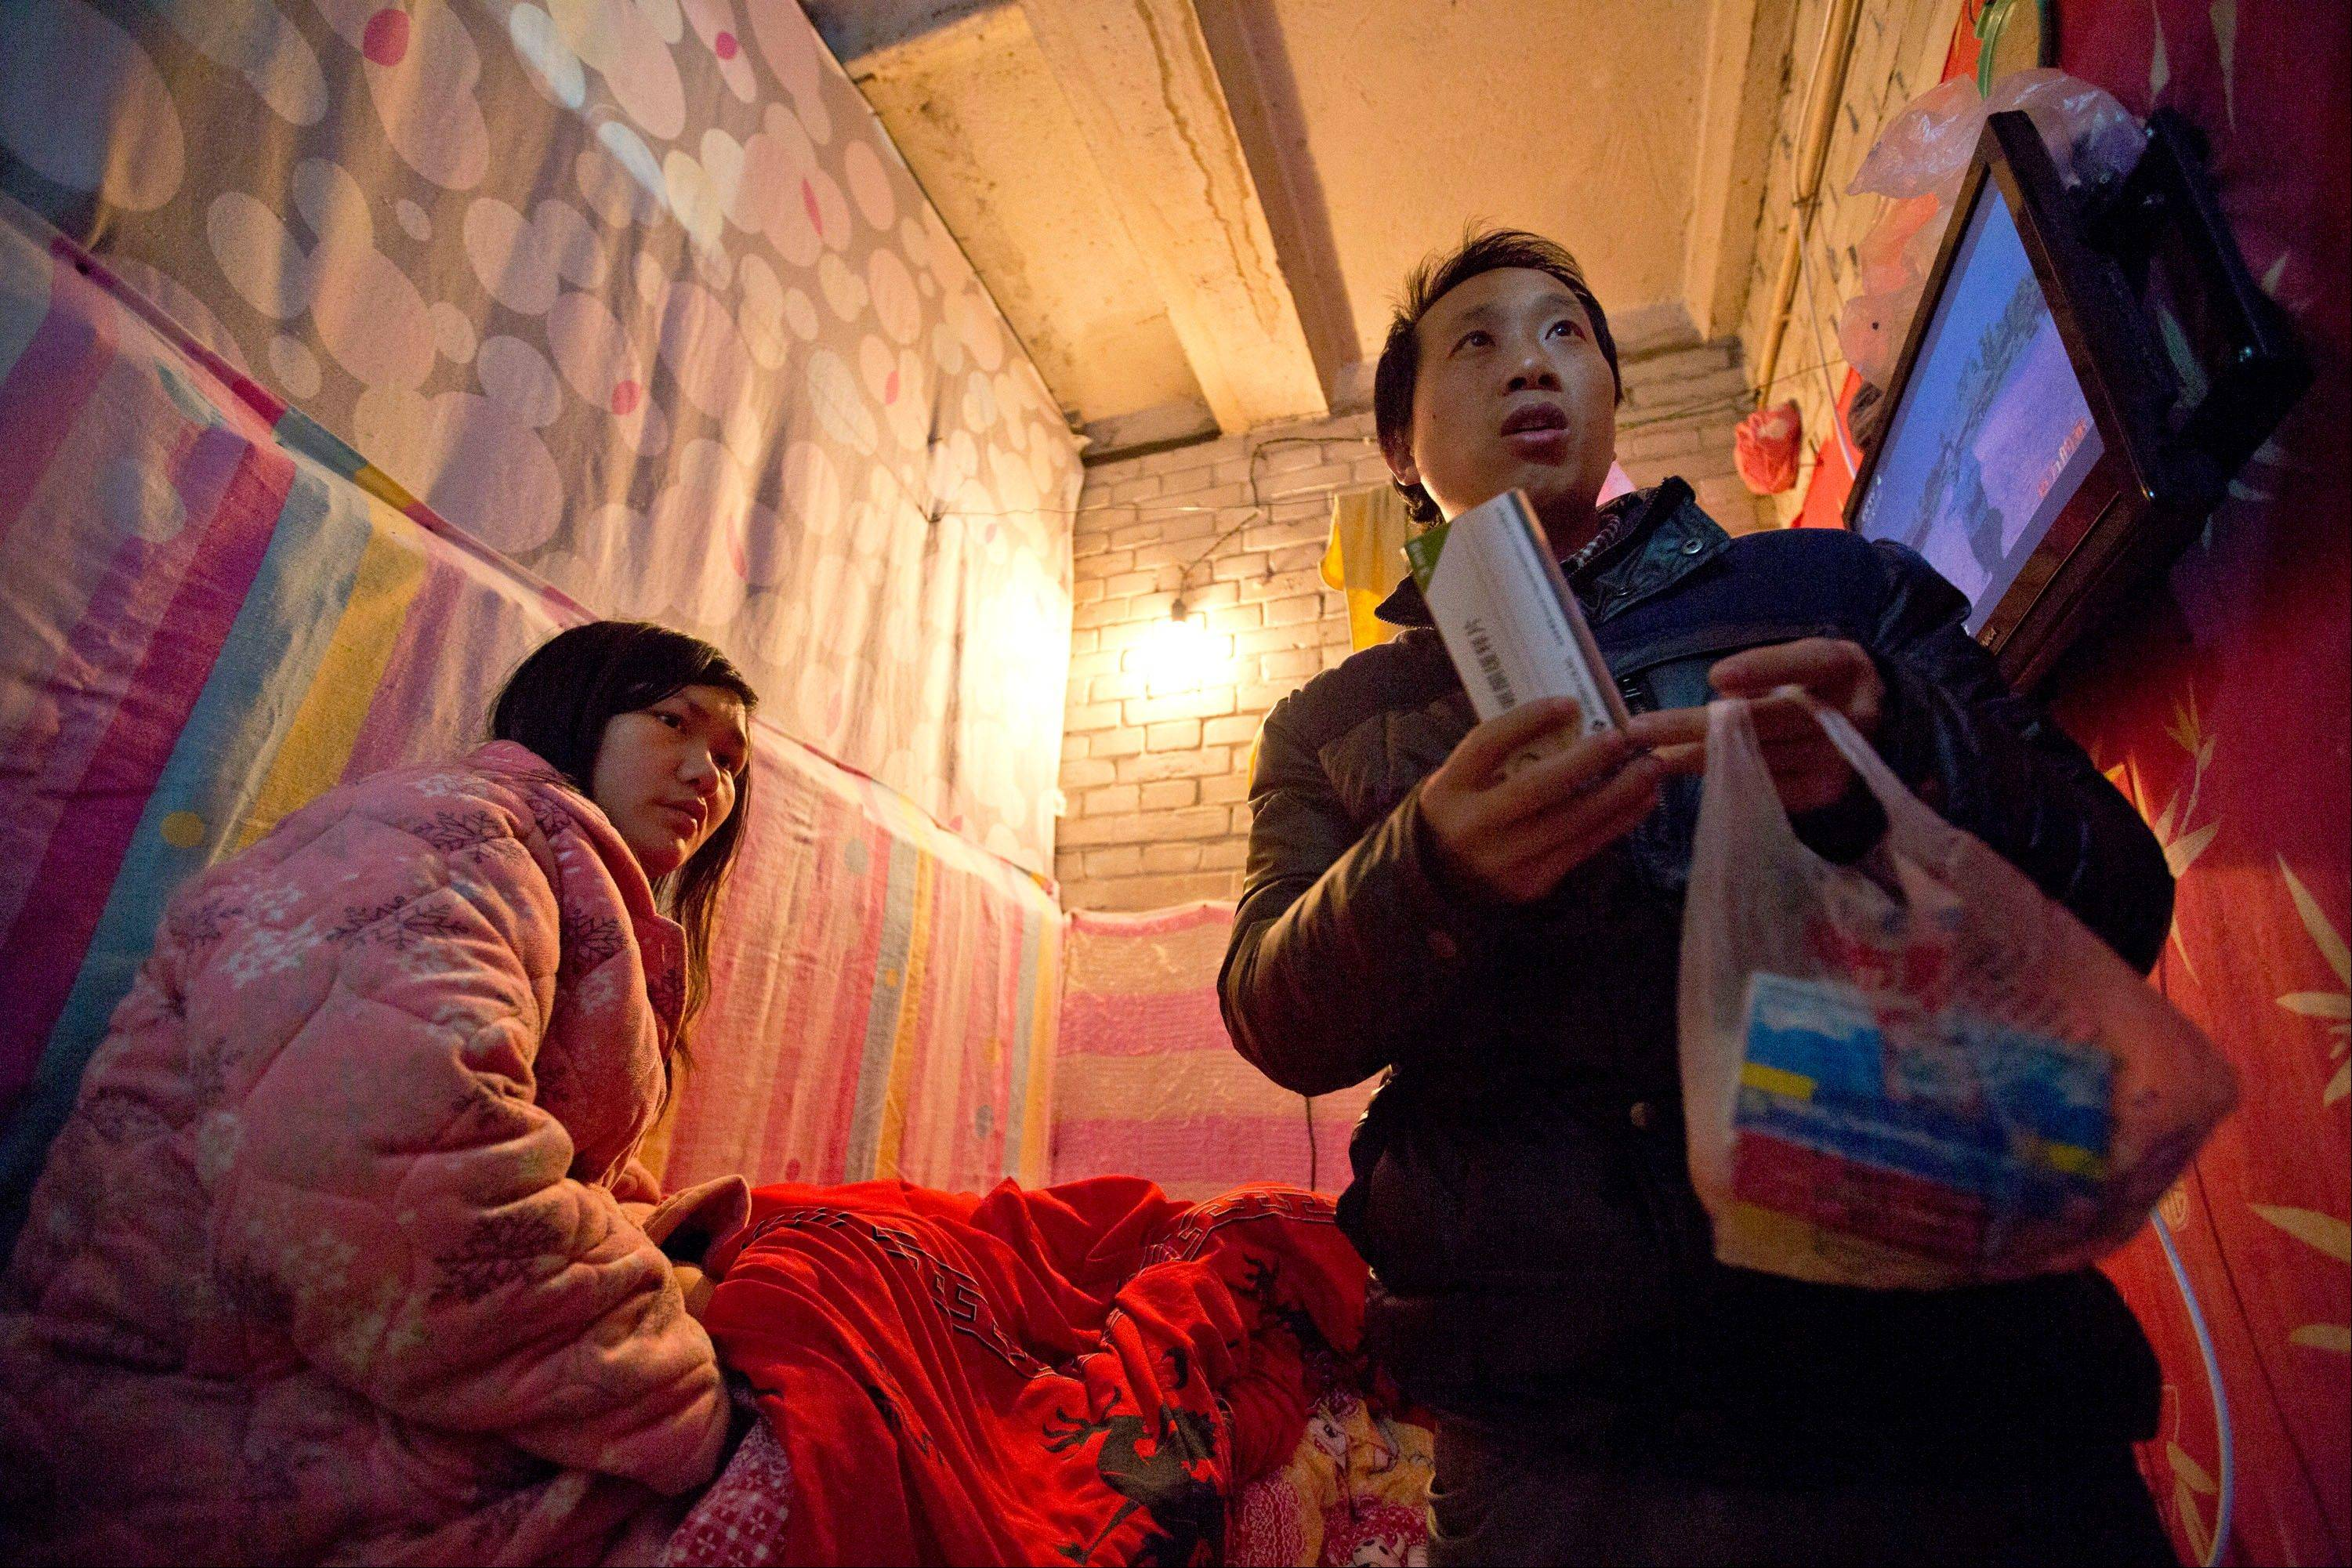 Wu Yongyuan, right, shows medicines his wife Gong Qifeng, left, takes to control her schizophrenia symptoms. When Gong's mind is clear, she can recall how she begged for mercy as several people pinned her down and drove a syringe of labor-inducing drugs into her stomach when she was seven months pregnant.